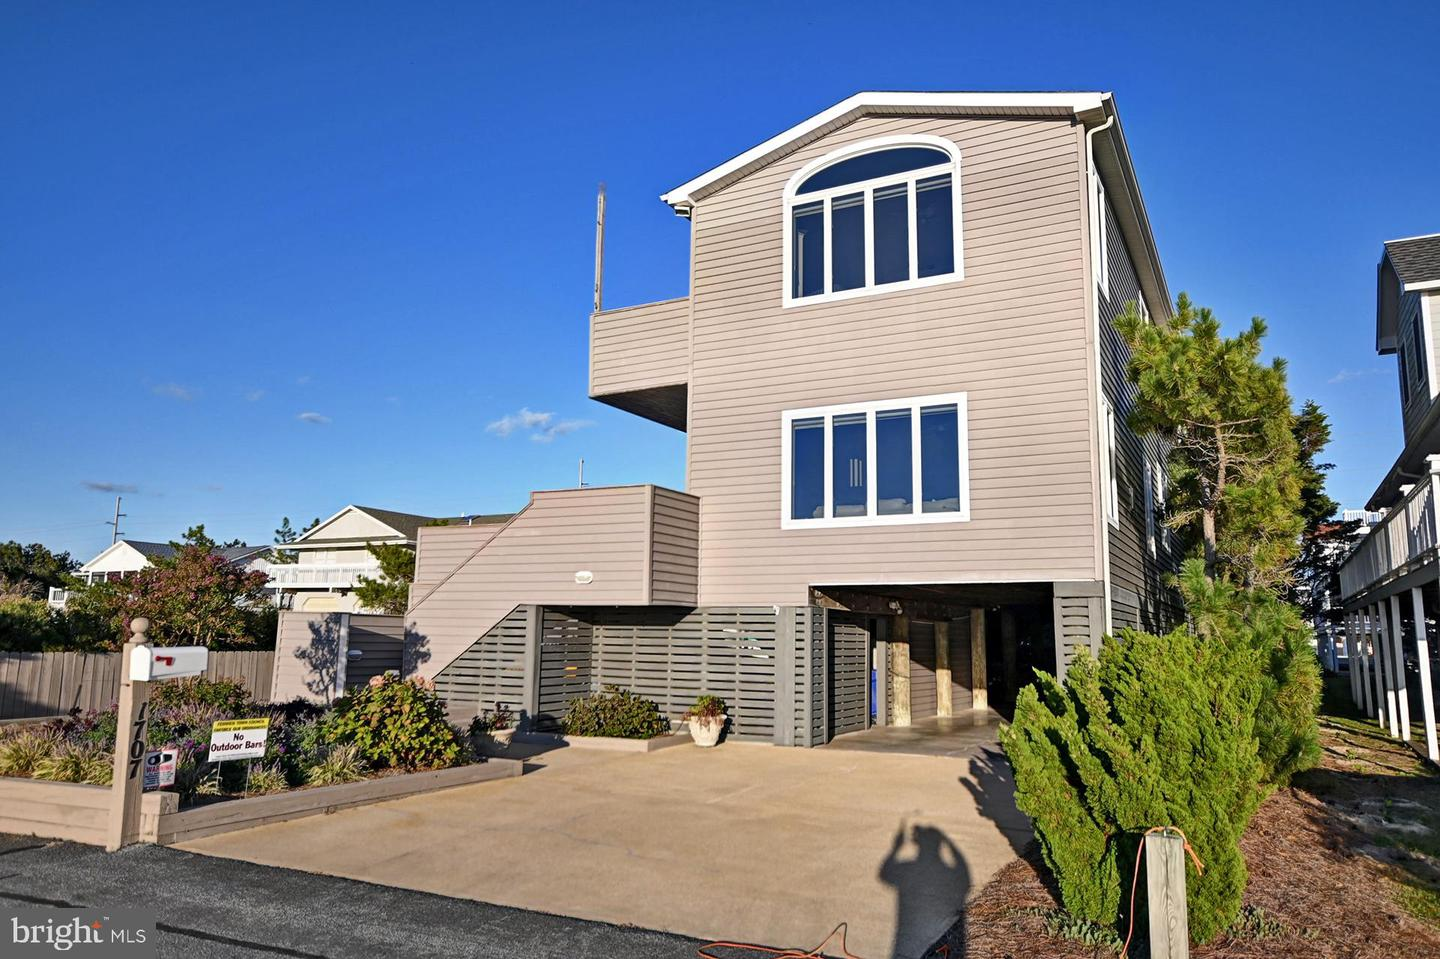 DESU171840-304367802839-2020-11-11-11-43-33 1707 Bay St | Fenwick Island, DE Real Estate For Sale | MLS# Desu171840  - Ocean Atlantic